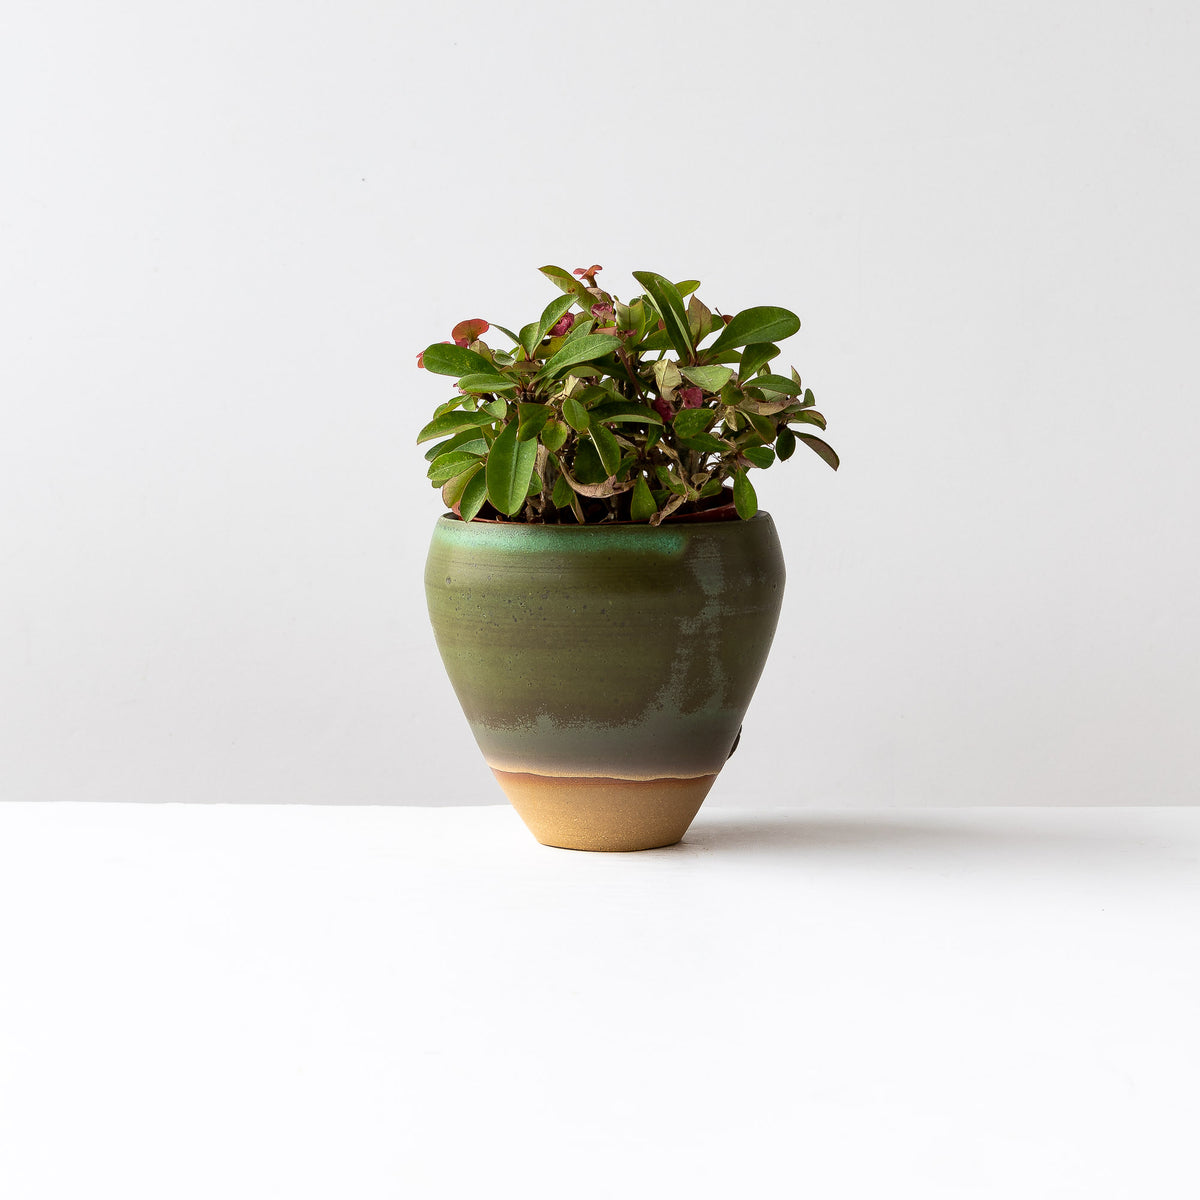 Kaki Green Flower Vase Handmade in Stoneware - Sold by Chic & Basta